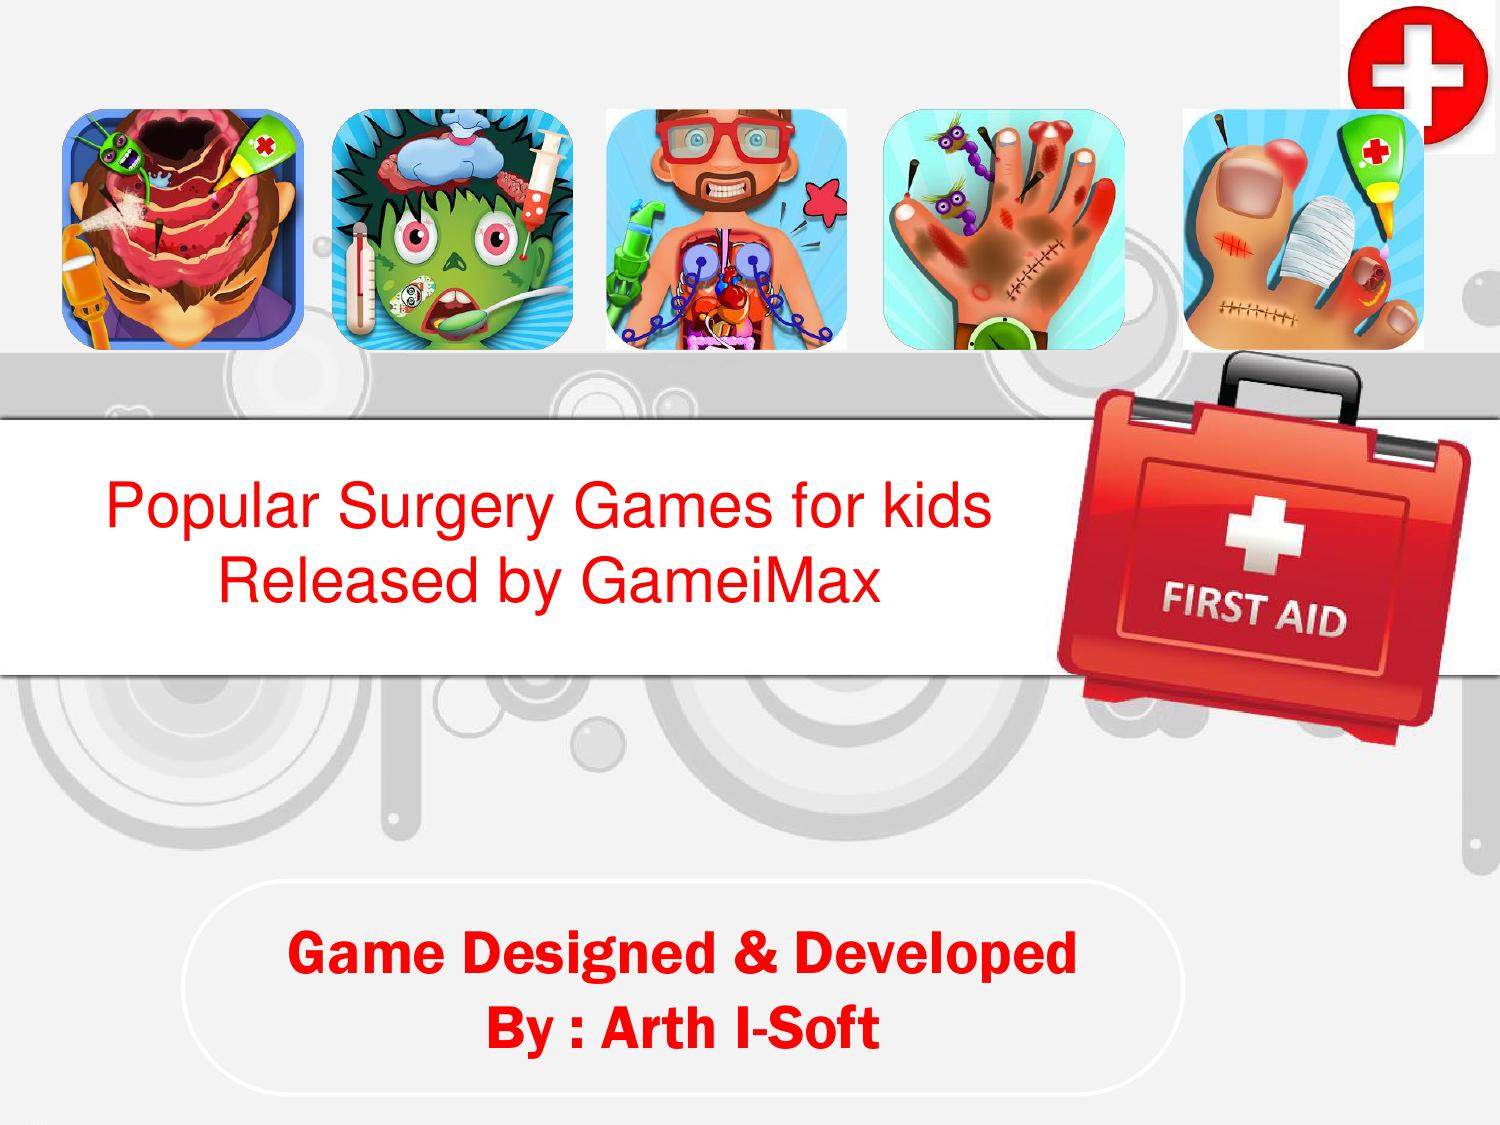 Popular surgery games for kids released by gameimax by laura kelly popular surgery games for kids released by gameimax by laura kelly issuu solutioingenieria Image collections